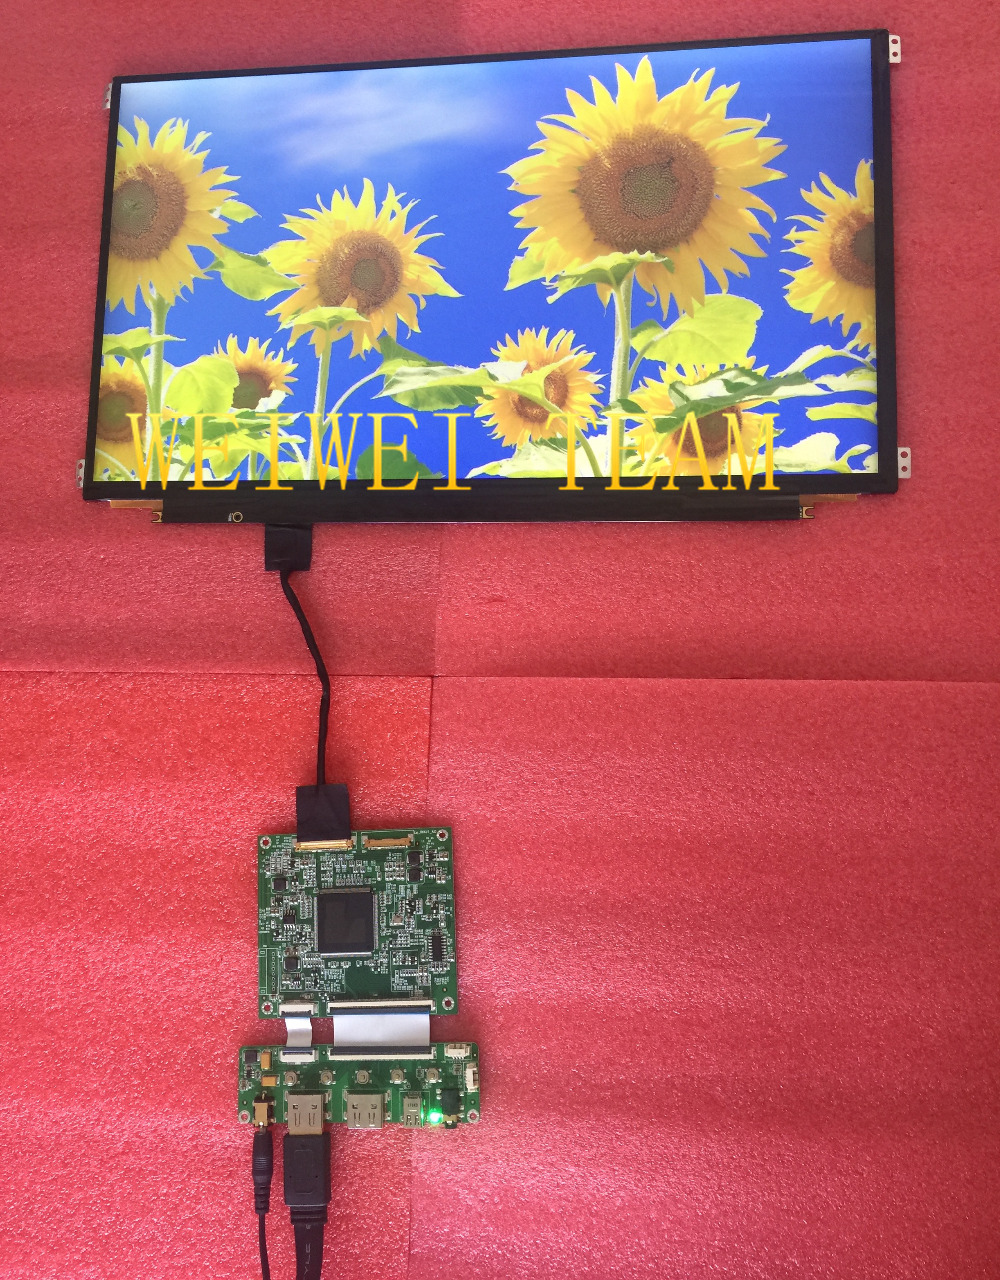 3200*1800 15.6 inch LCM lcd screen panel with HDMI controller board driver board cables for Laptop notebook monitor